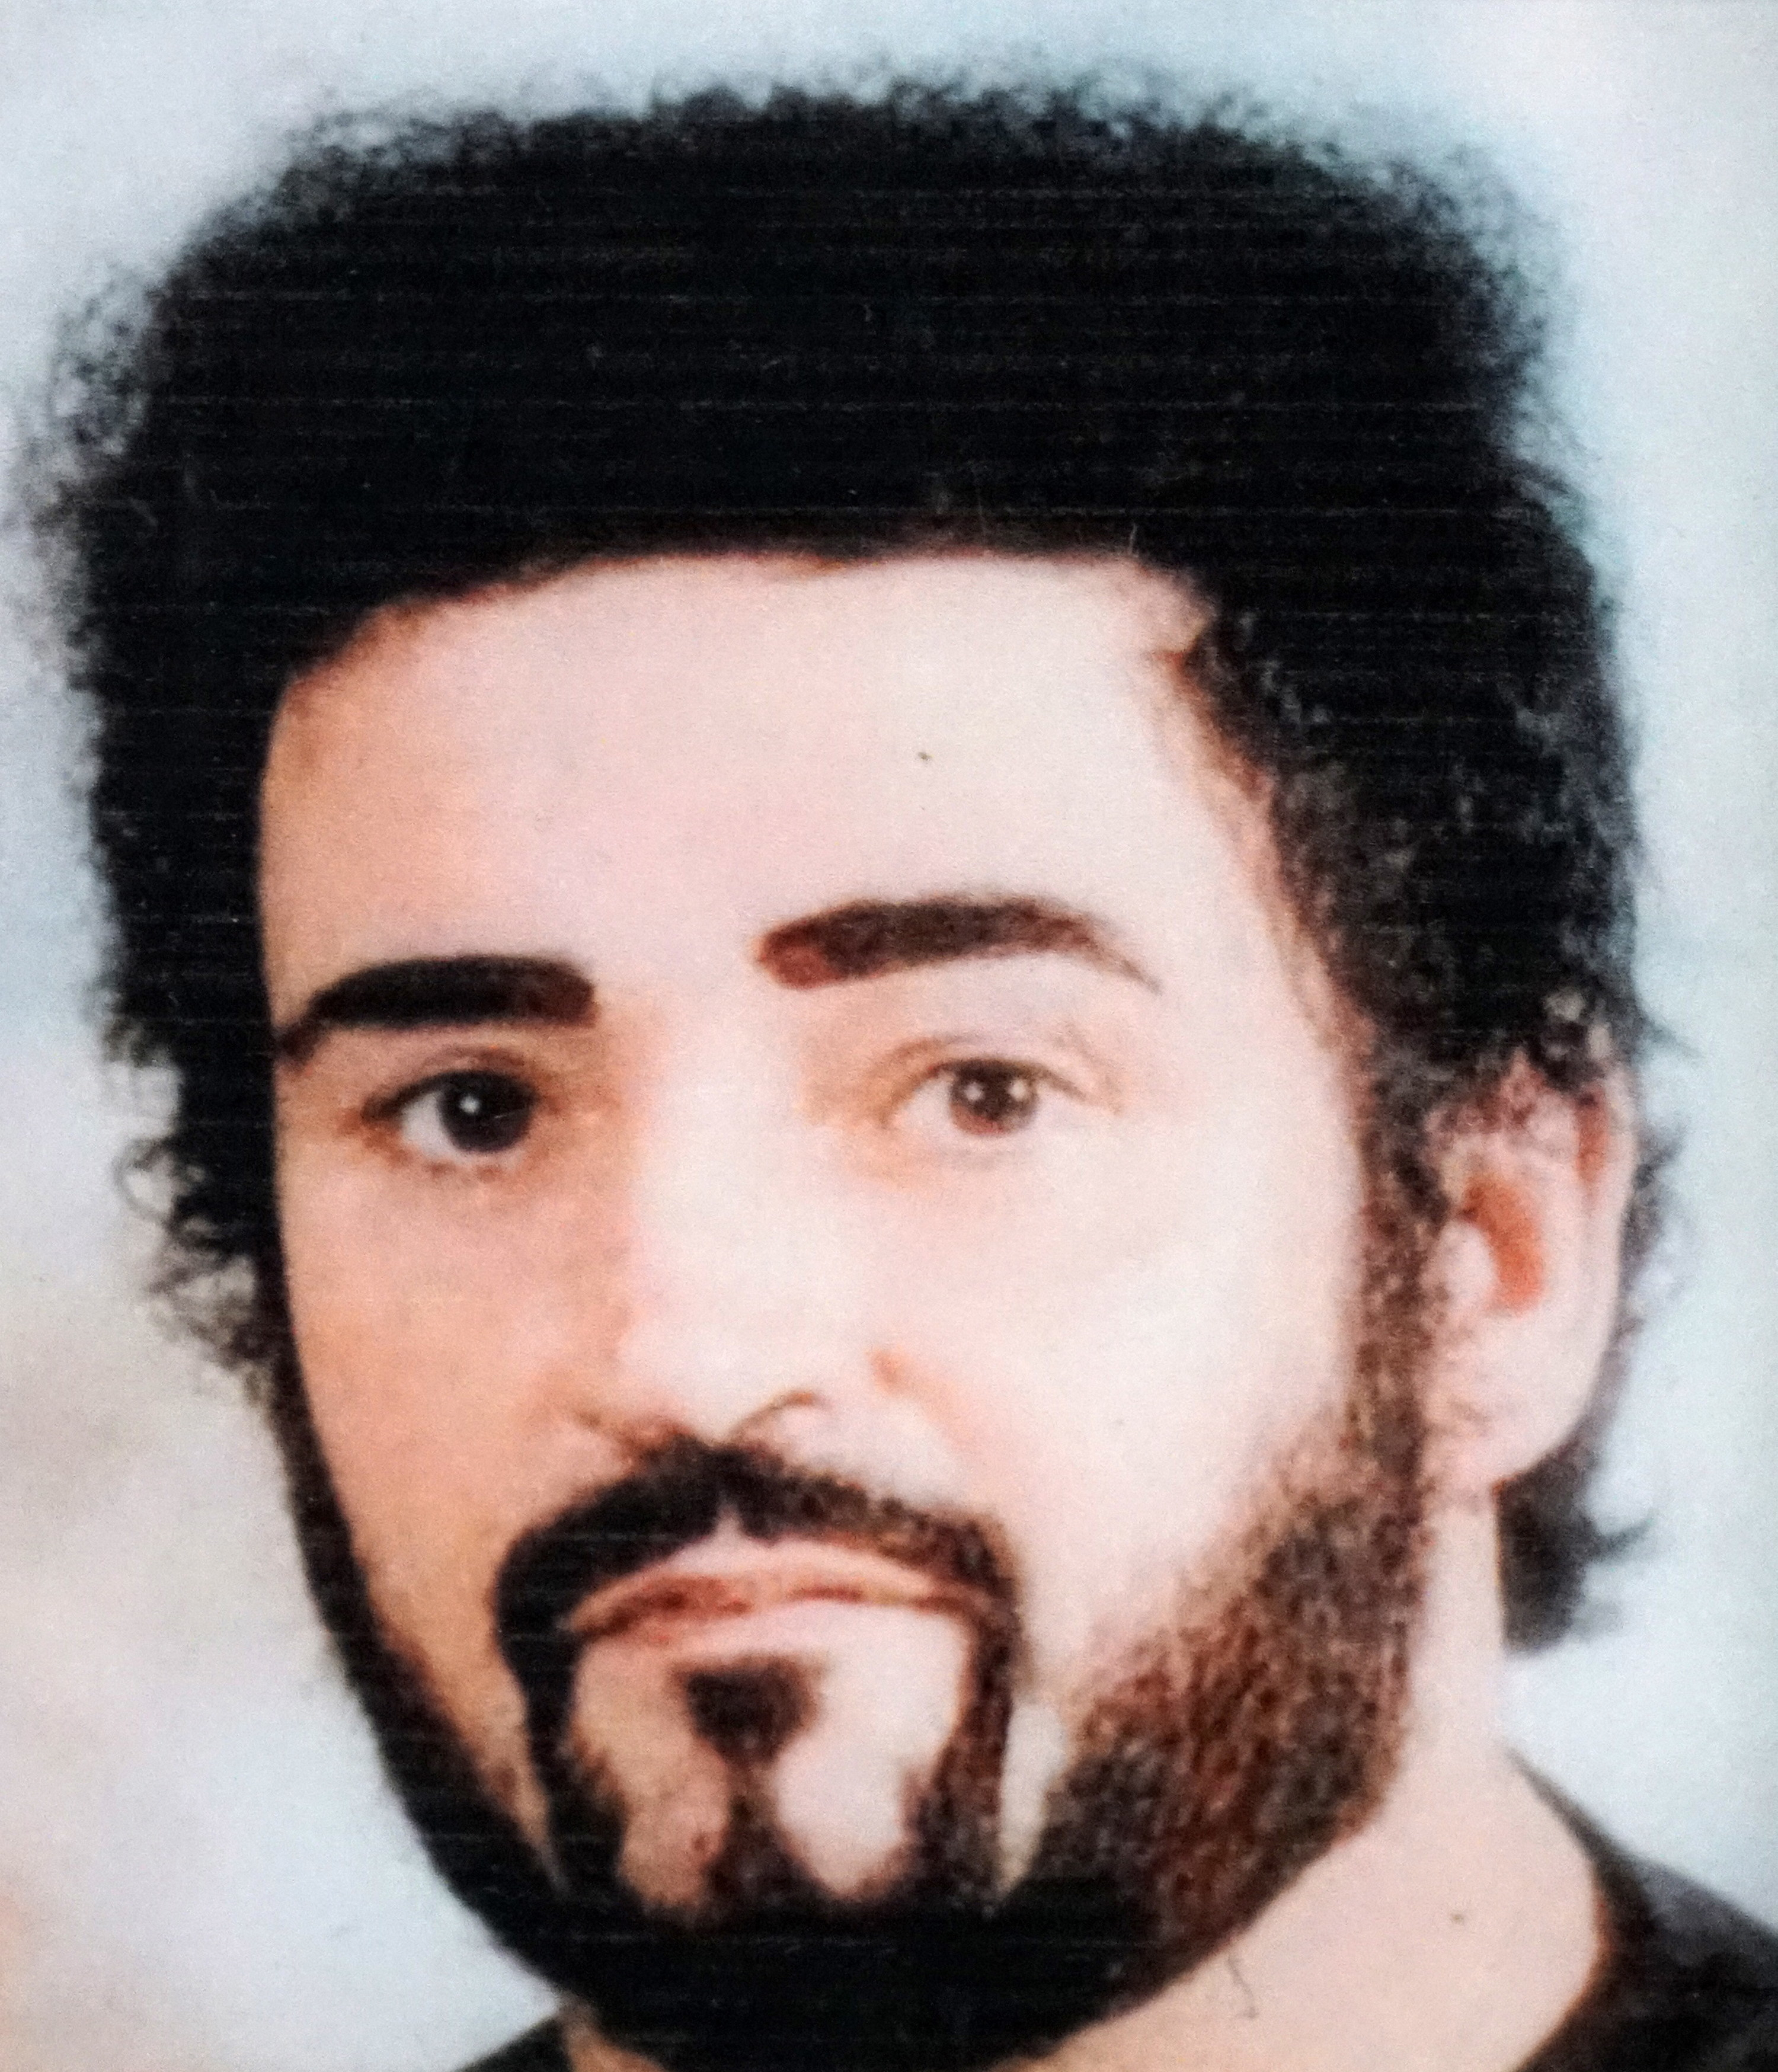 A photo of Peter Sutcliffe